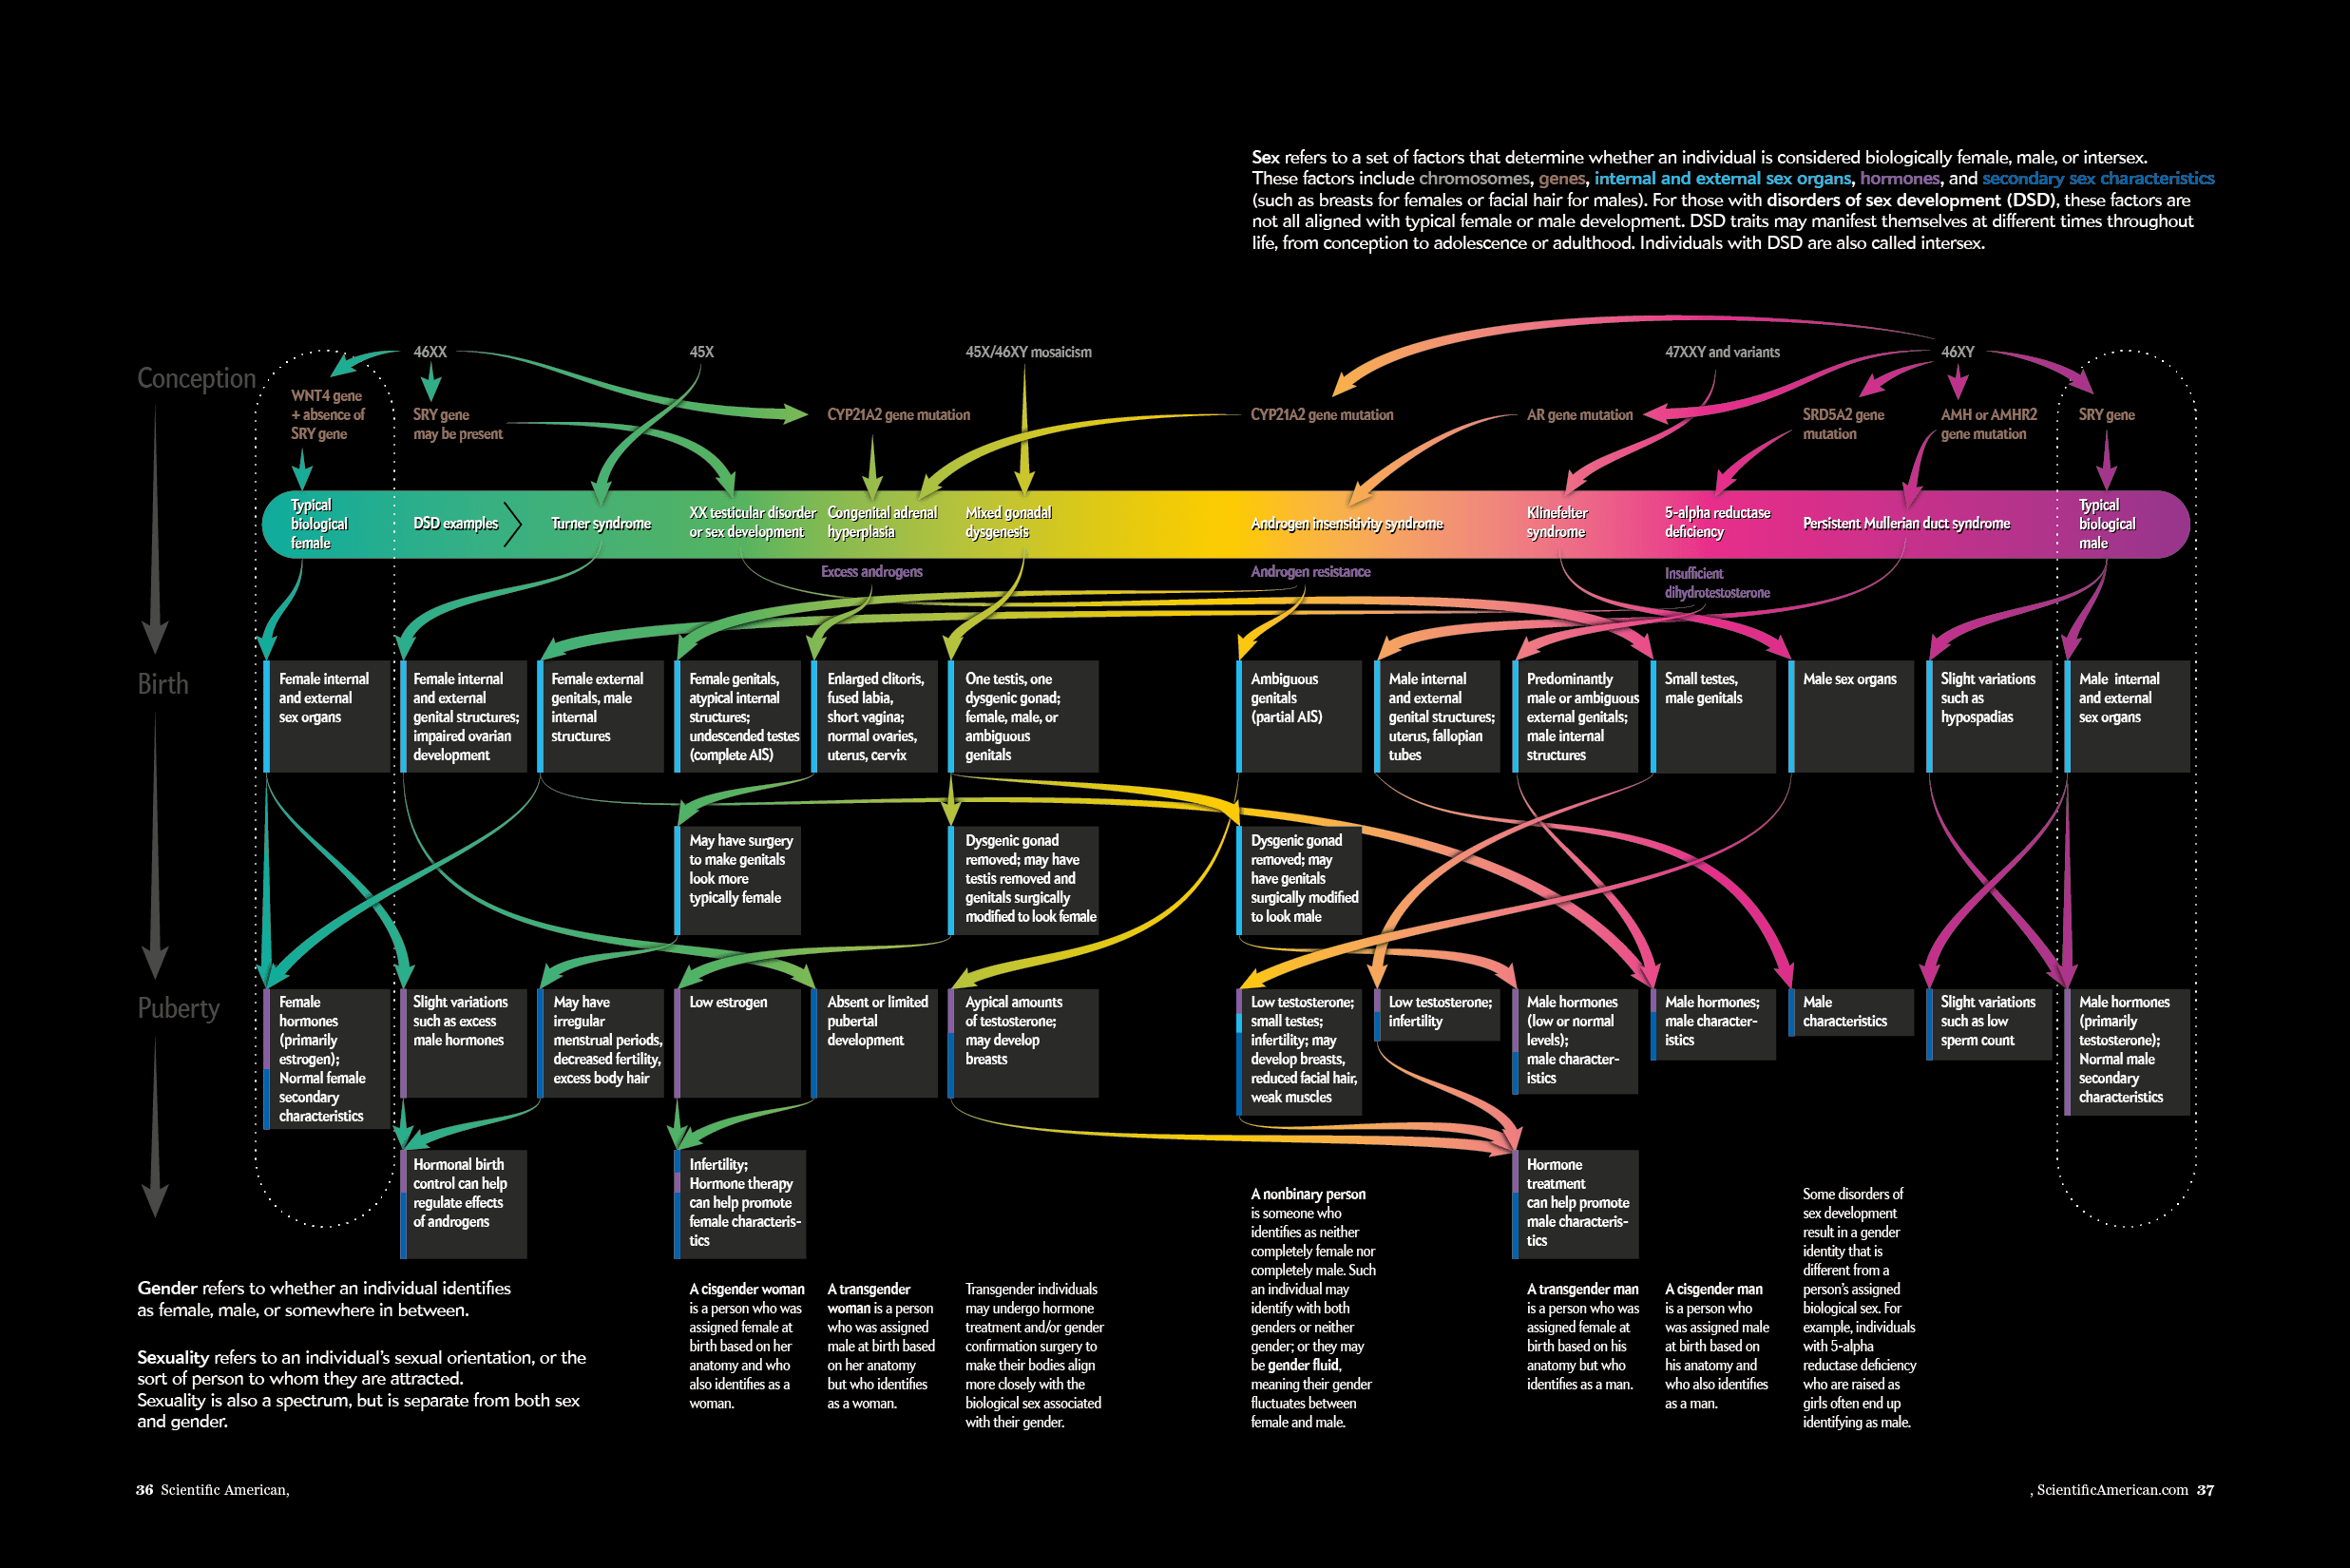 elements of communication diagram tekonsha wiring visualizing sex as a spectrum - scientific american blog network